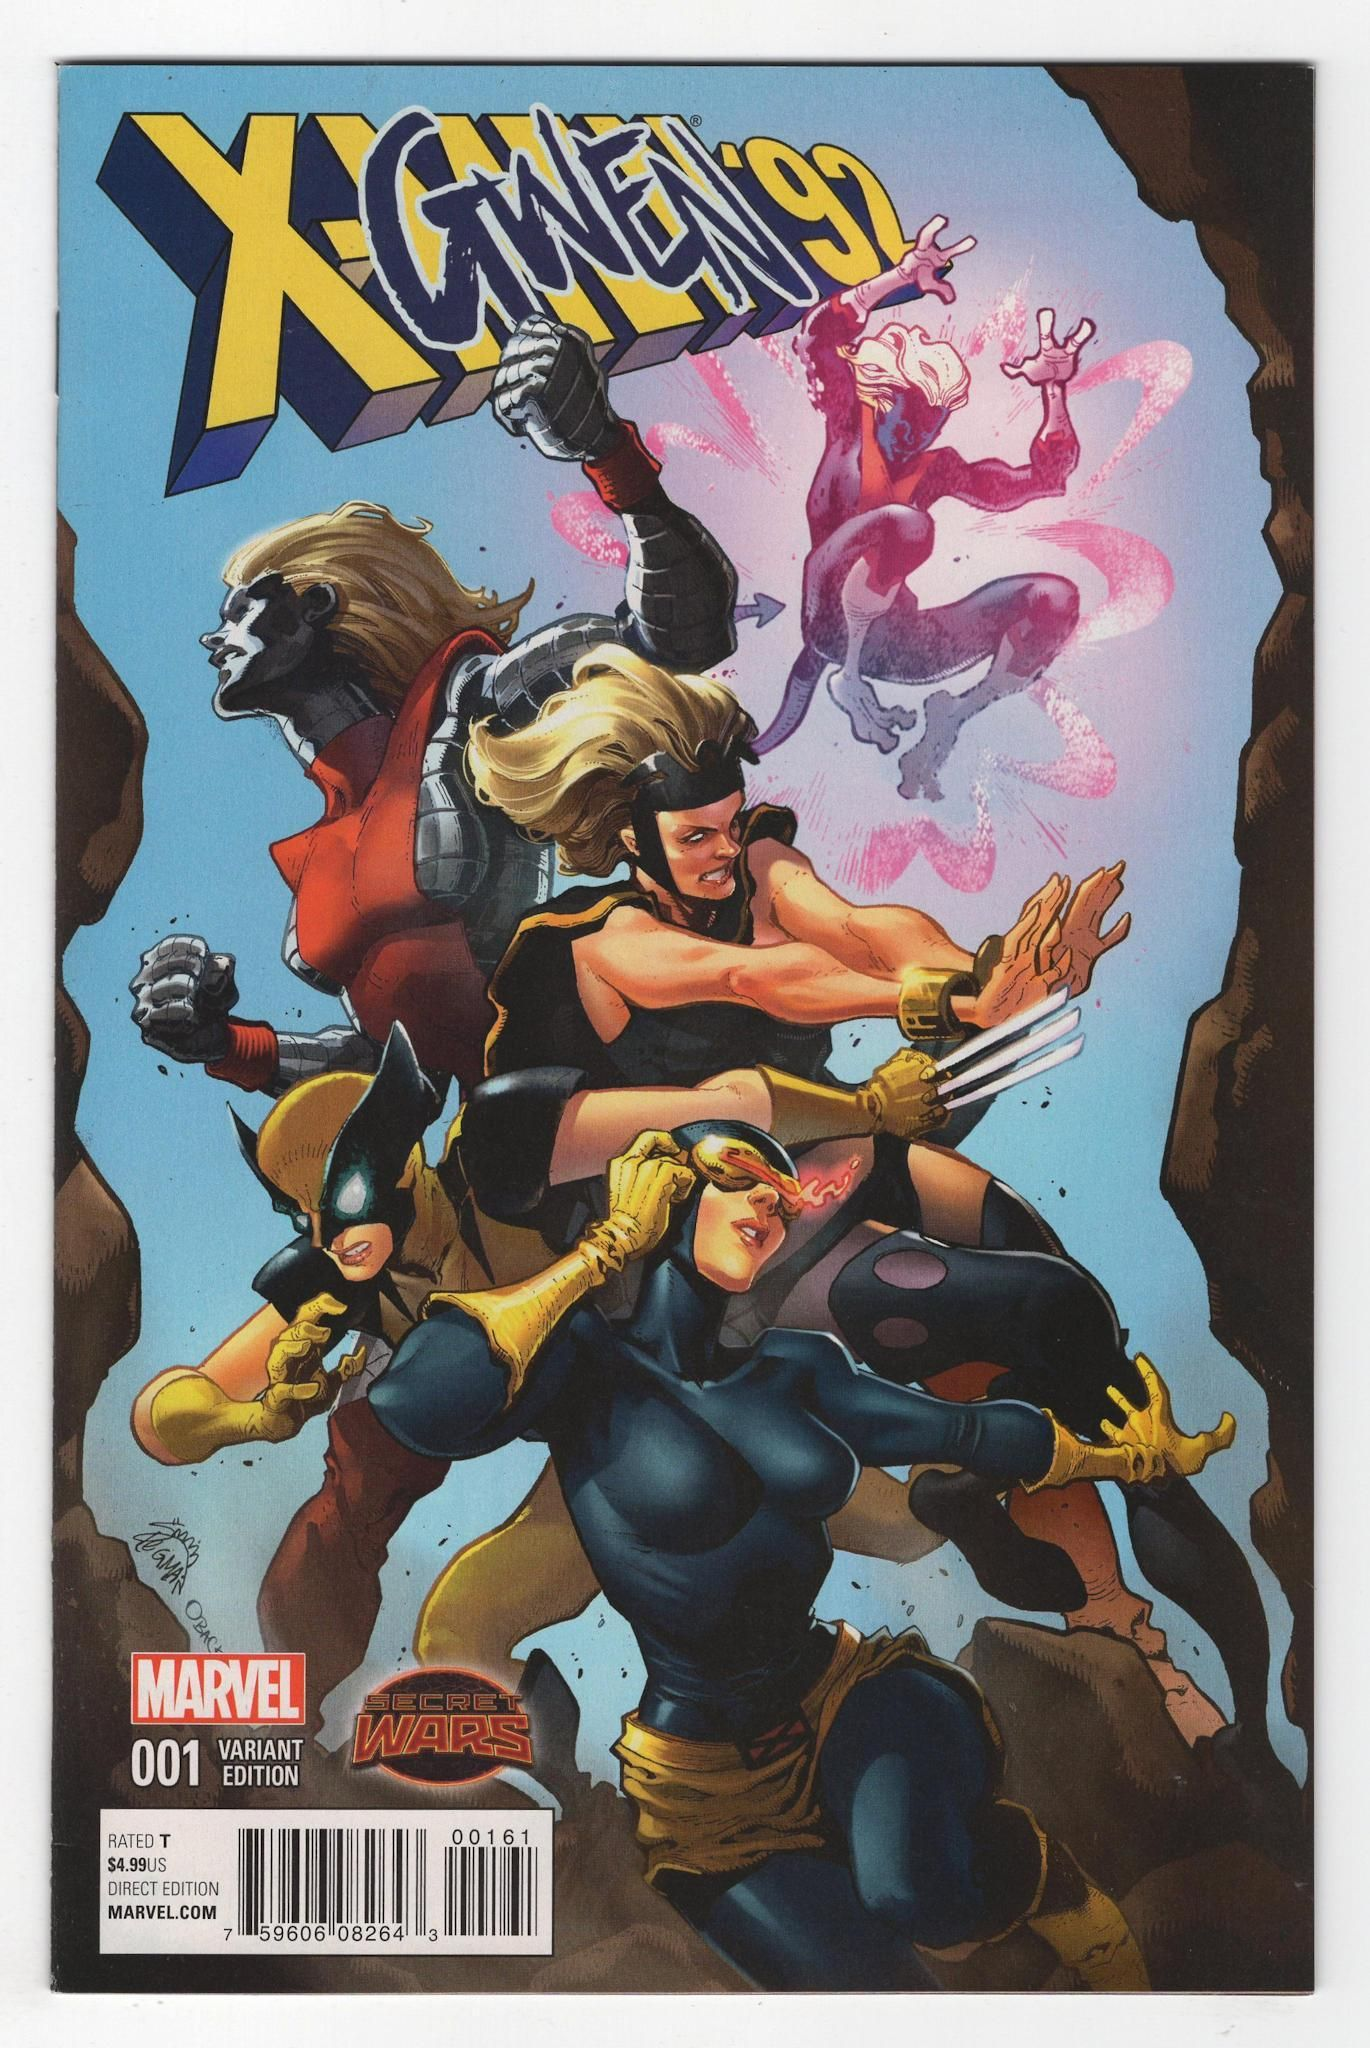 X Men 92 1 Ryan Stegman Variant Cover 2015 Marvel Comics Art Marvel Heroes Marvel Comics